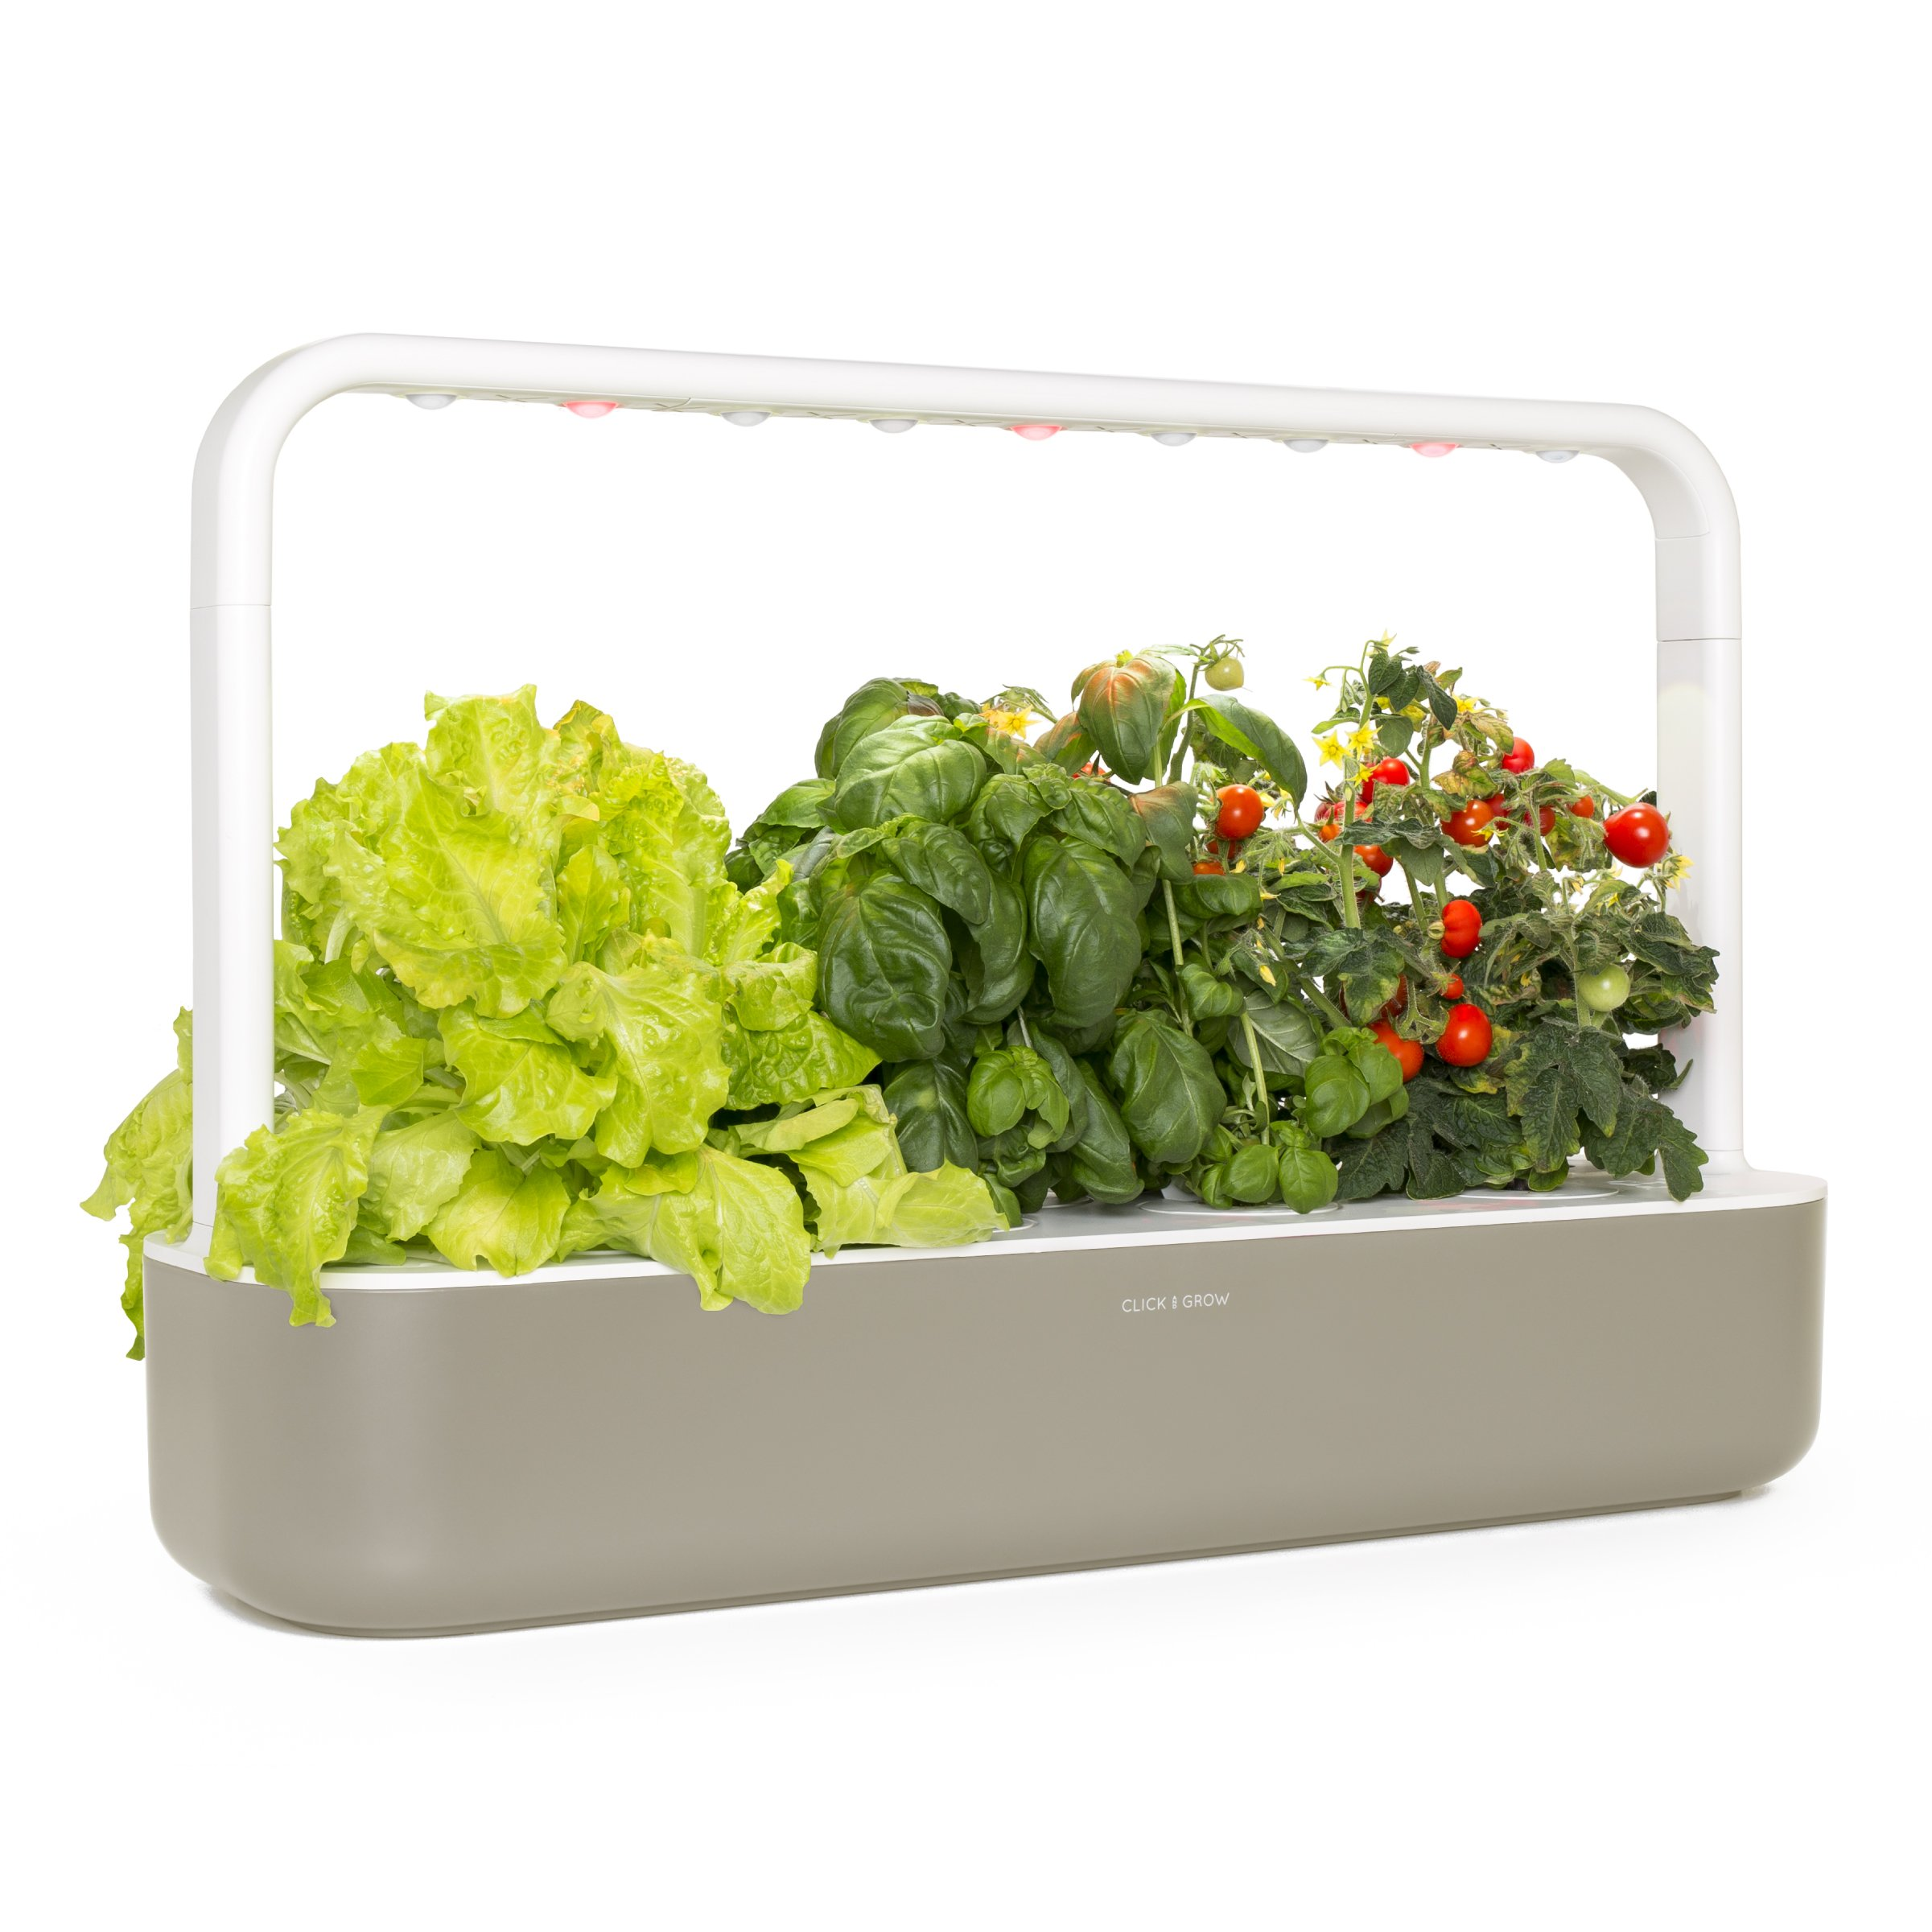 Click and Grow Smart Garden 9 Indoor Home Garden (Includes 3 Mini Tomato, 3 Basil and 3 Green Lettuce Plant pods), Beige